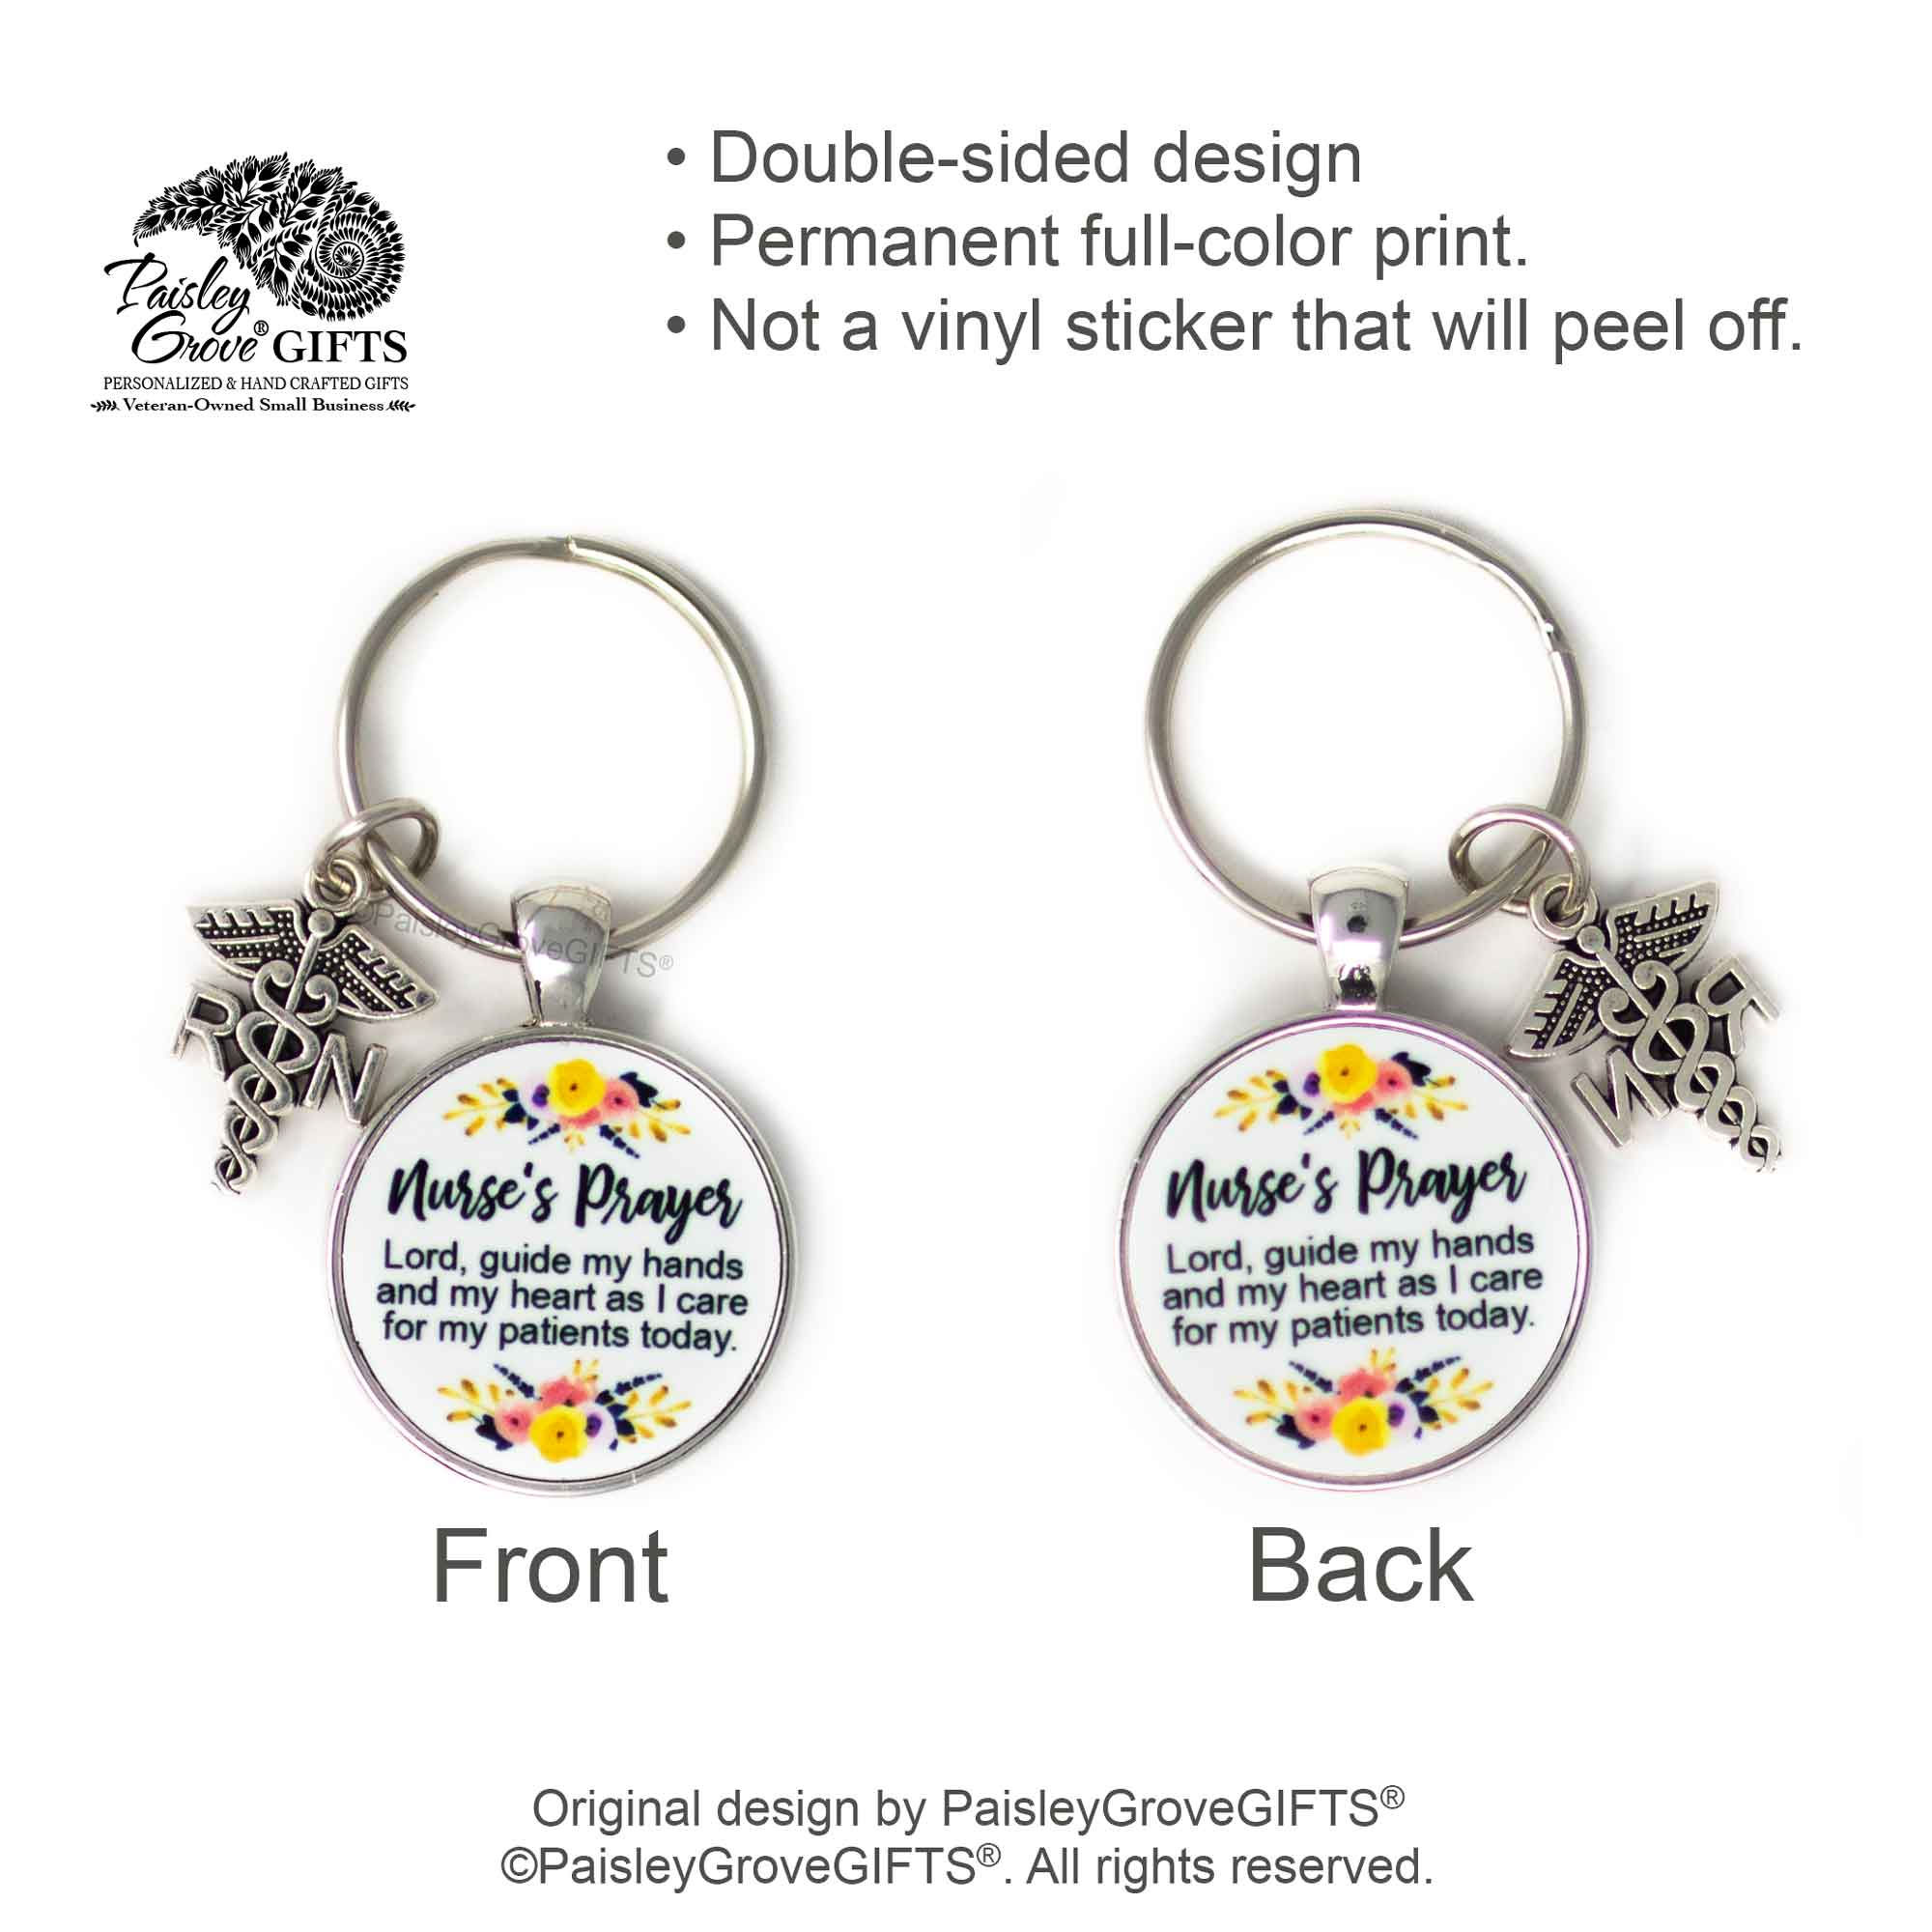 Copyright PaisleyGroveGIFTS S006c Nurse Keychain Double-Sided with RN charm